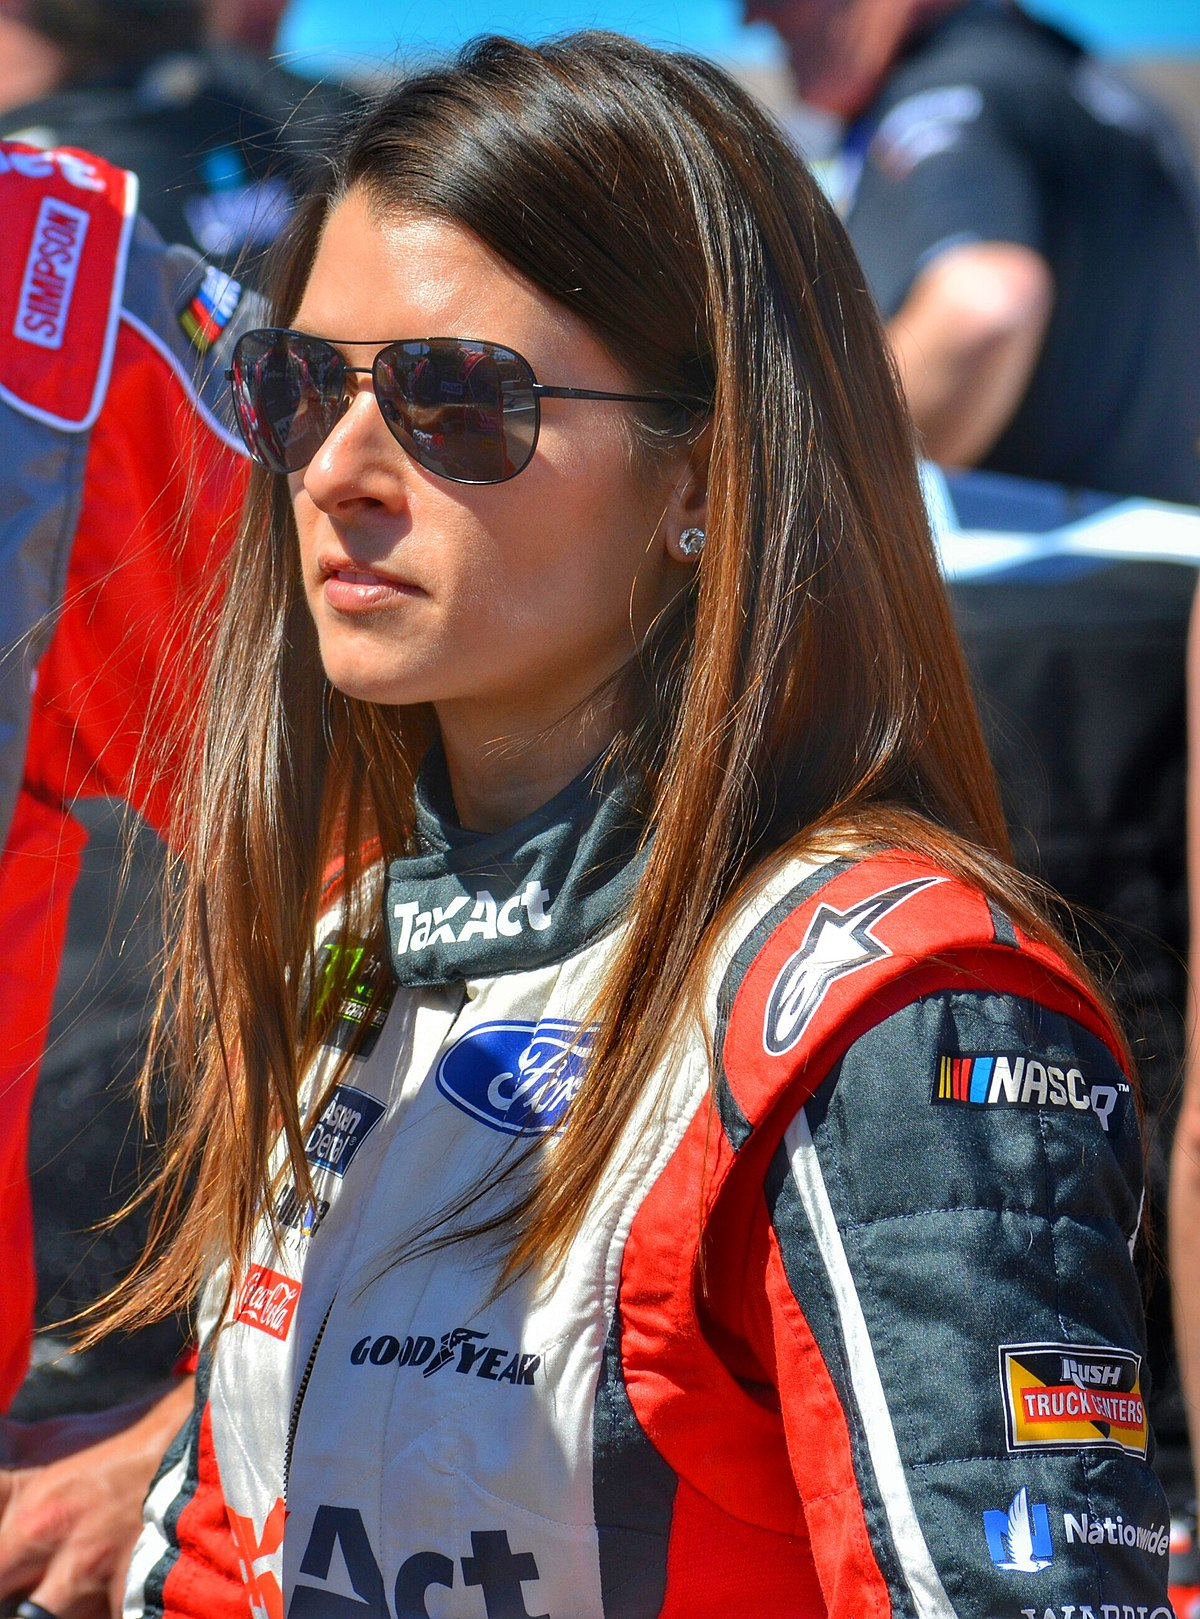 Daytona Dog Track Race Results : daytona, track, results, Danica, Patrick, Wikipedia